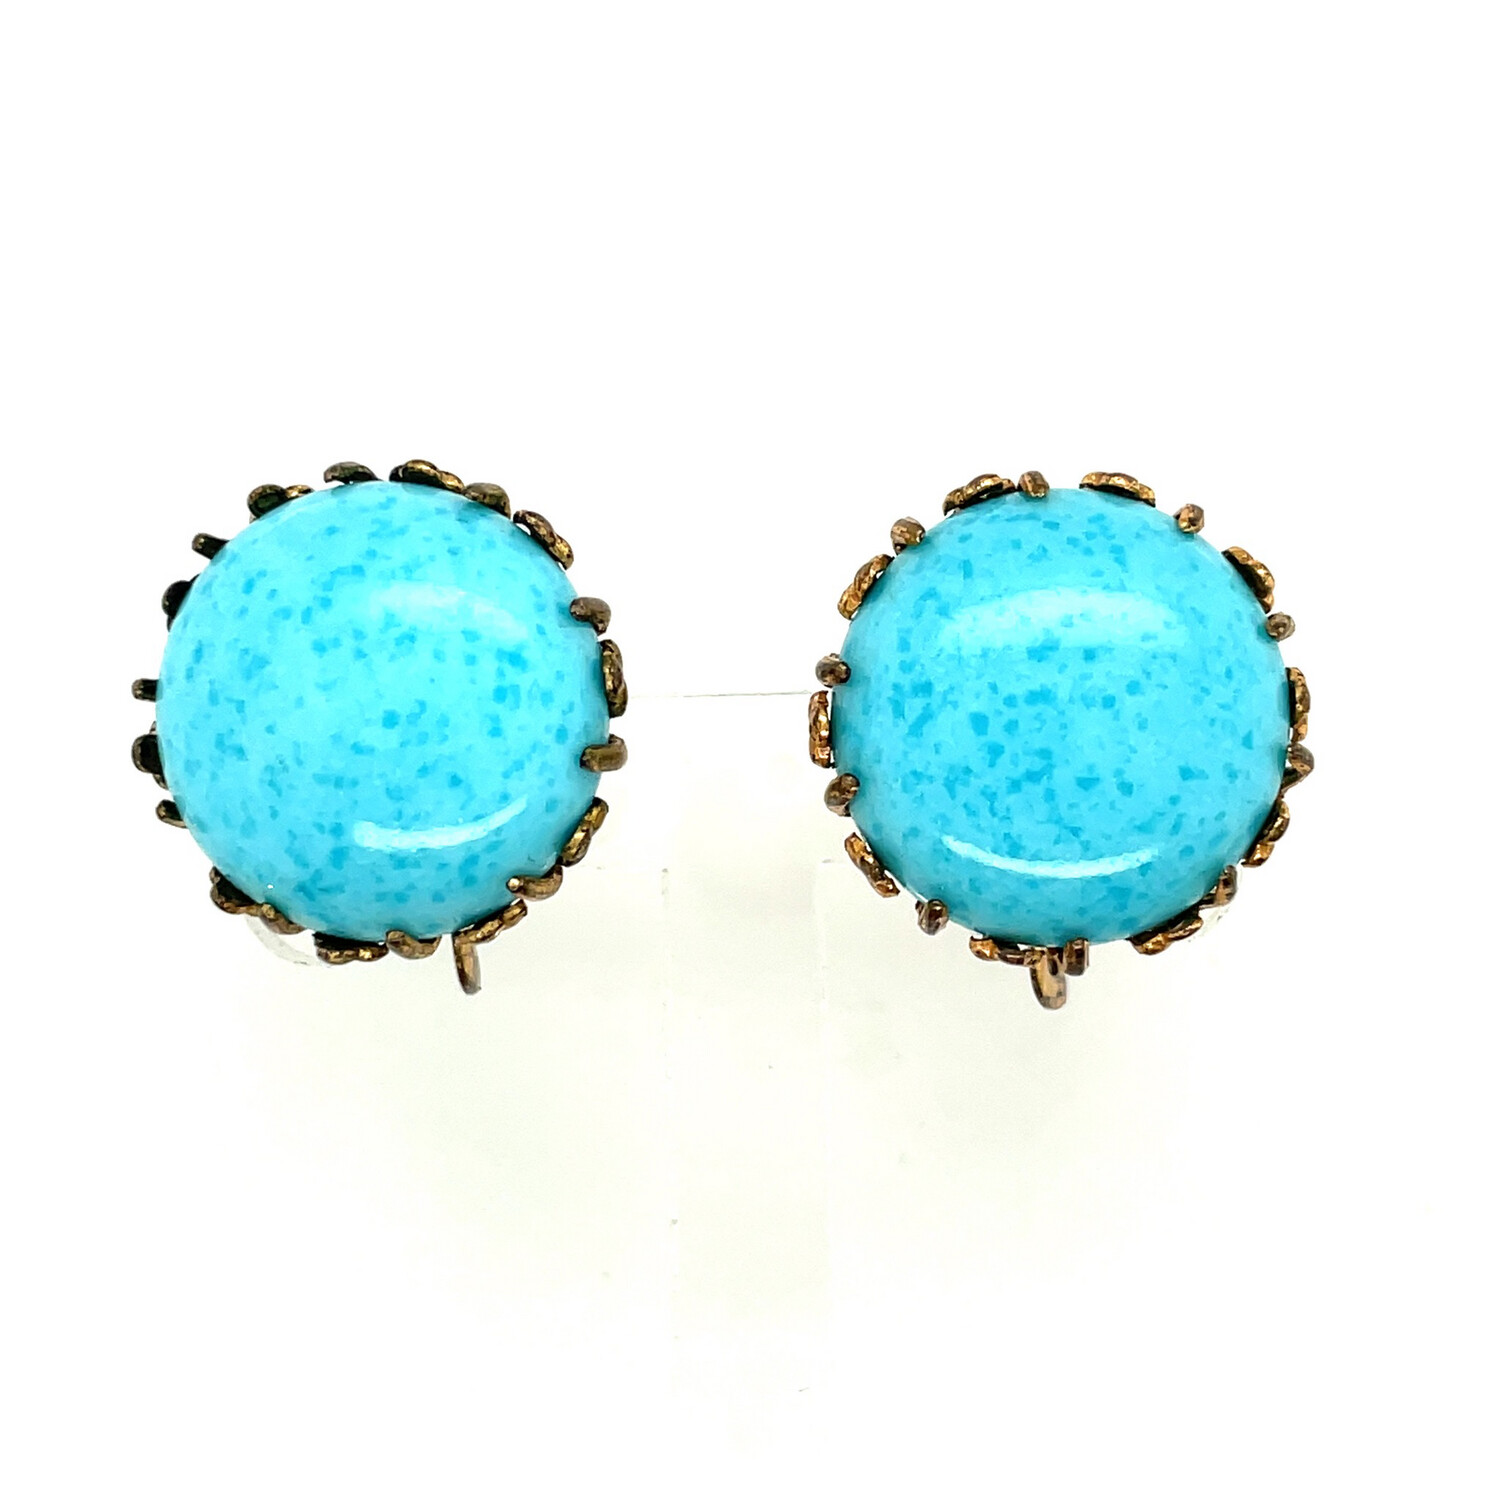 Vintage Miriam Haskell Glass Turquoise Earrings 1950's